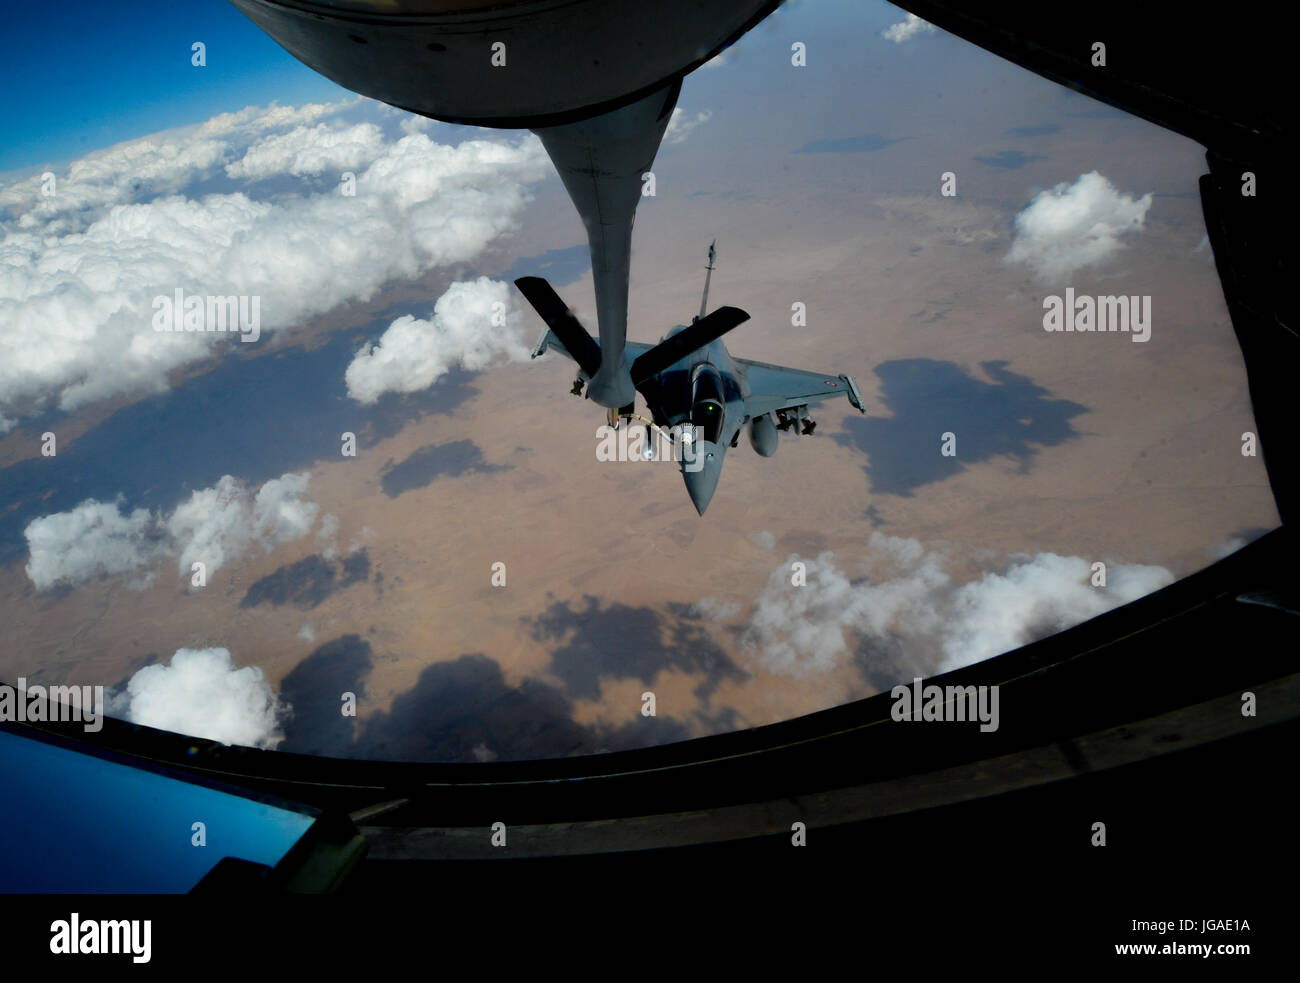 A French air force Rafale receives fuel from a 340th Expeditionary Air Refueling Squadron KC-135 Stratotanker in - Stock Image